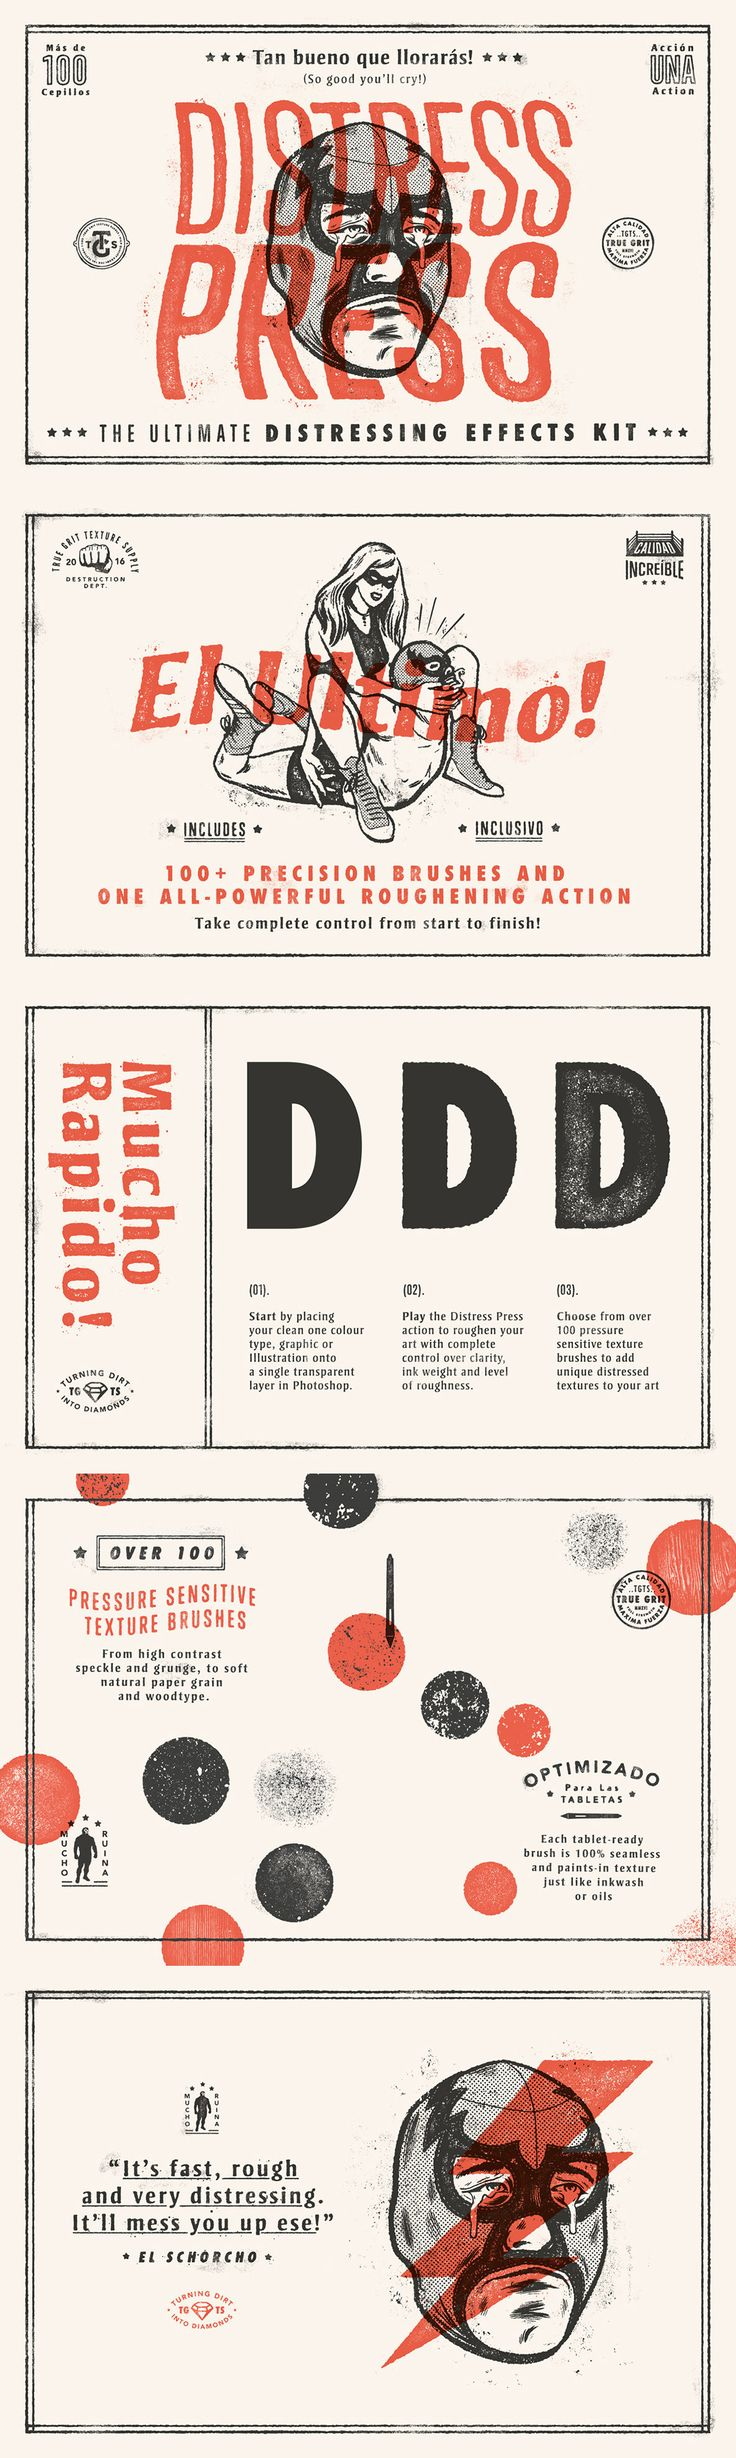 Distress Press: The Ultimate Distressing Effects Kit + Tutorial - Extras - YouWorkForThem